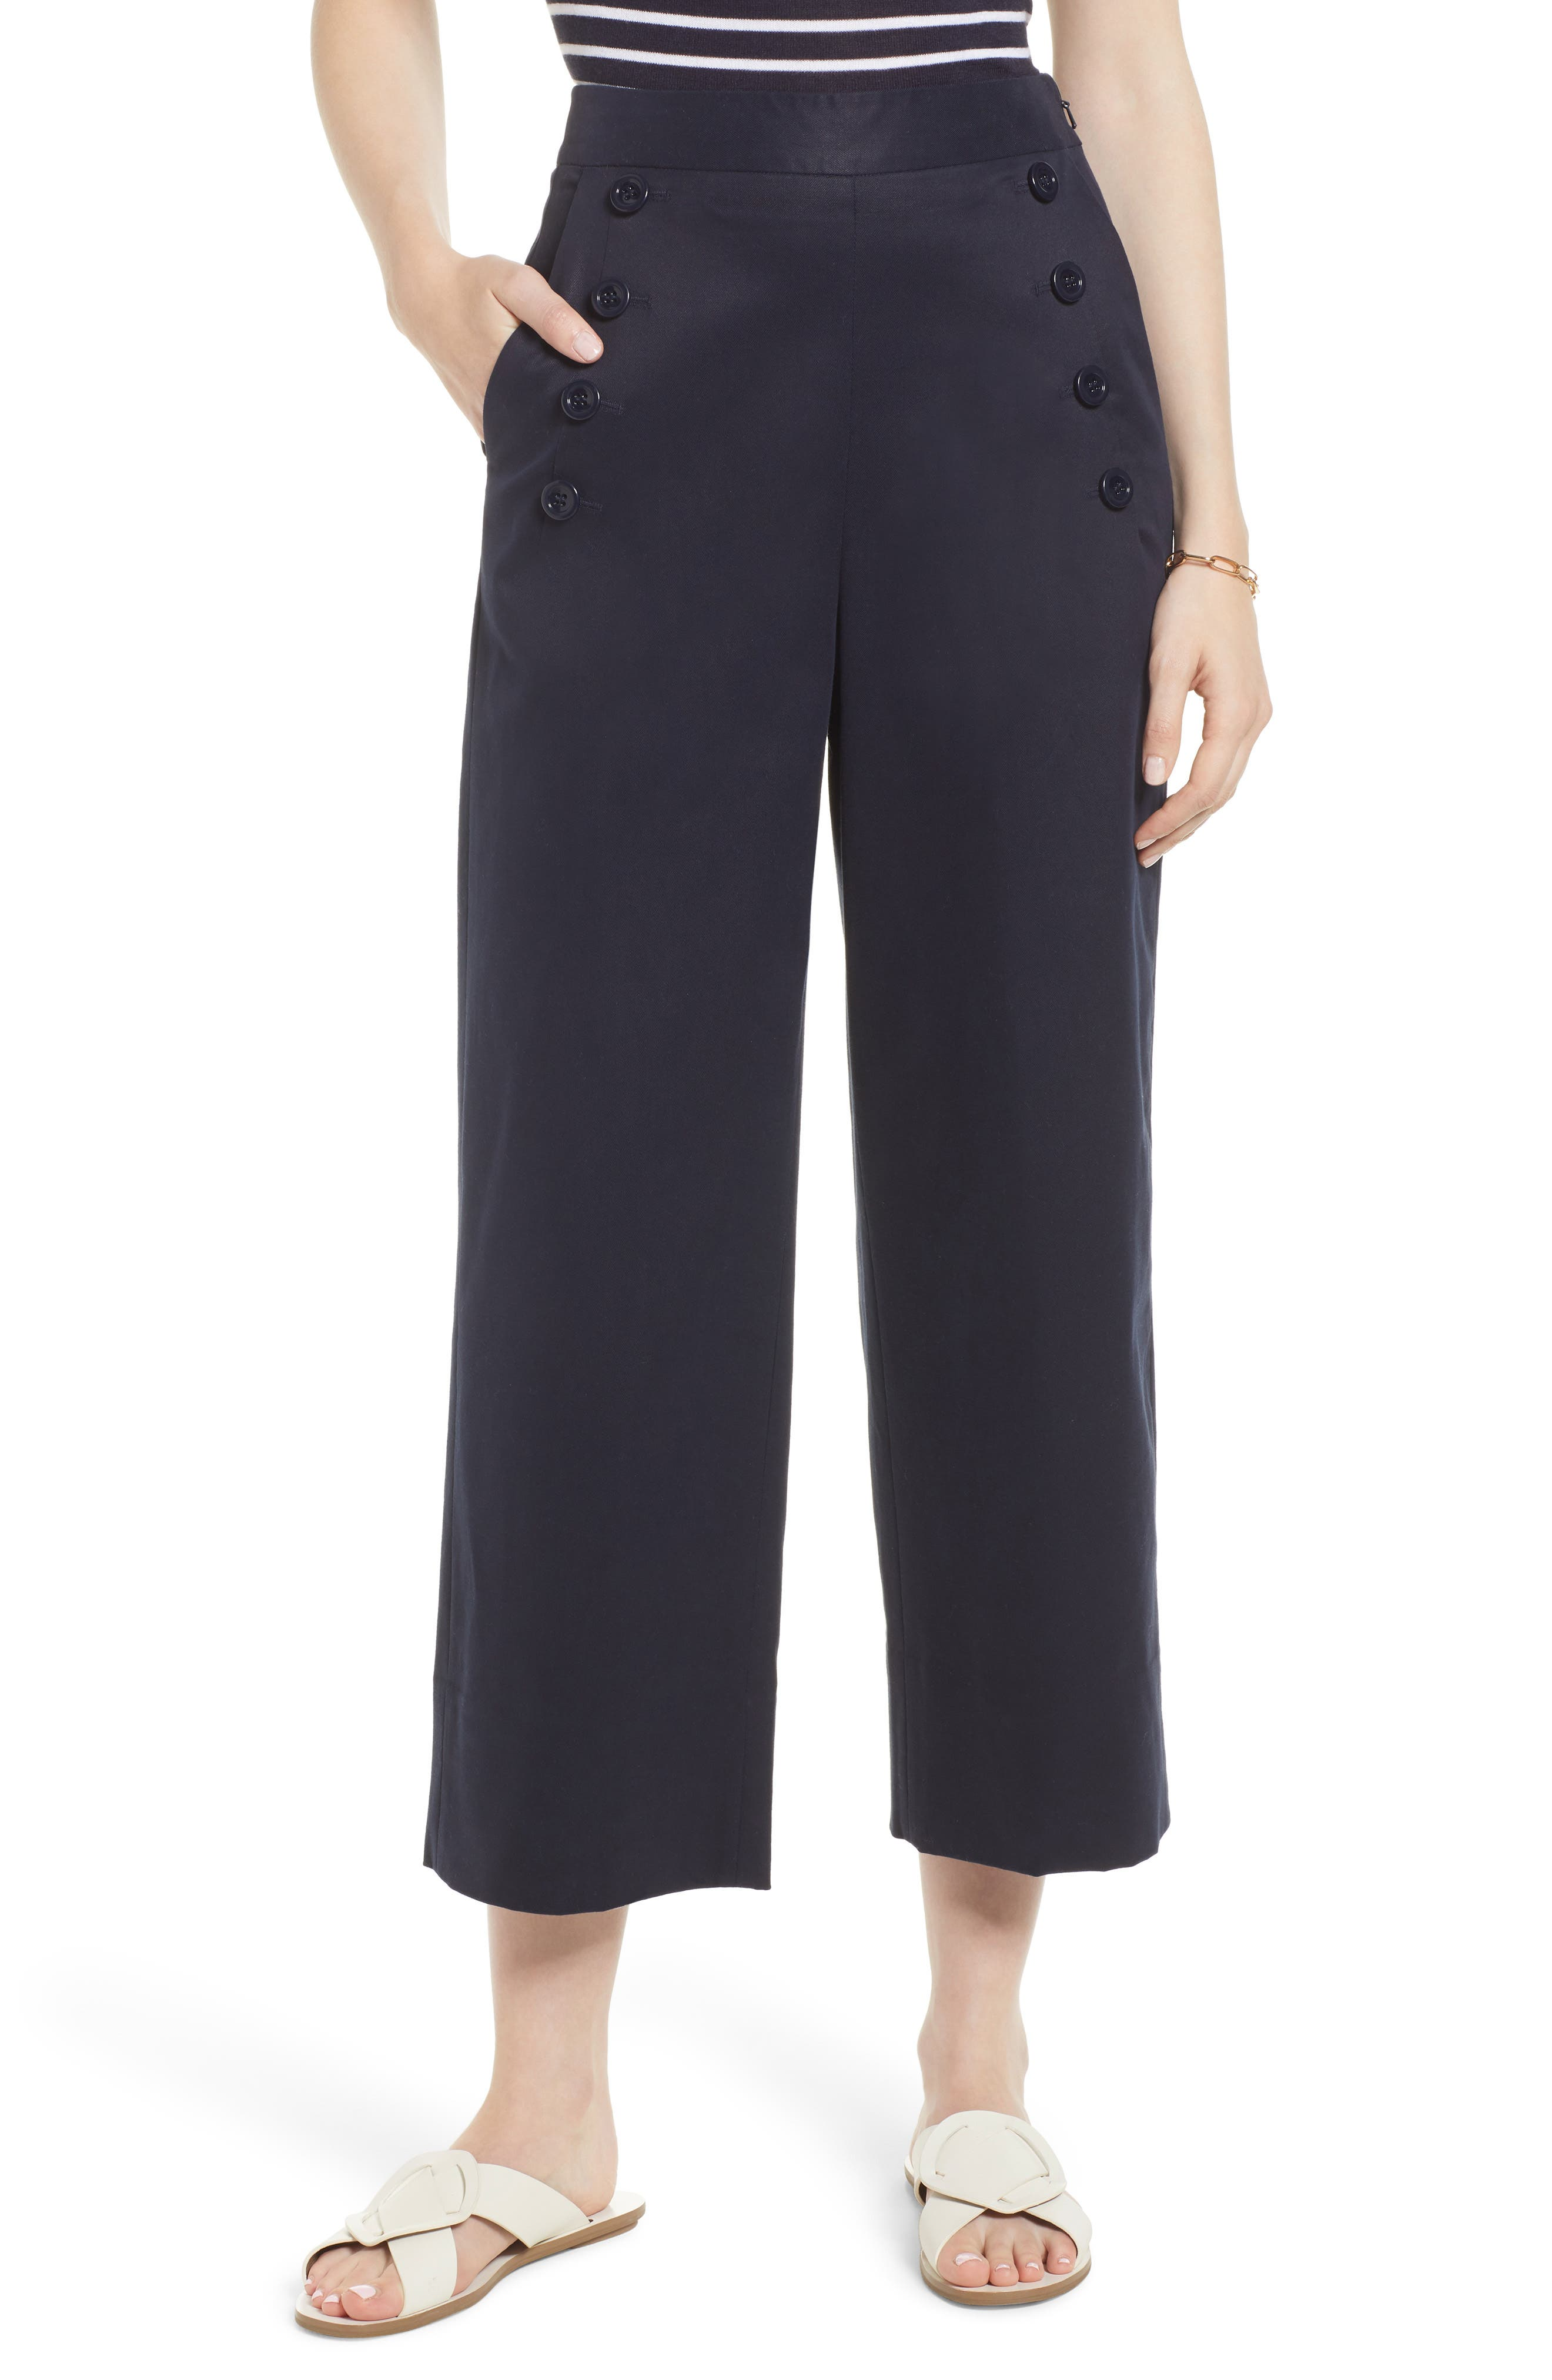 1901 Sailor Pants (Regular & Petite)